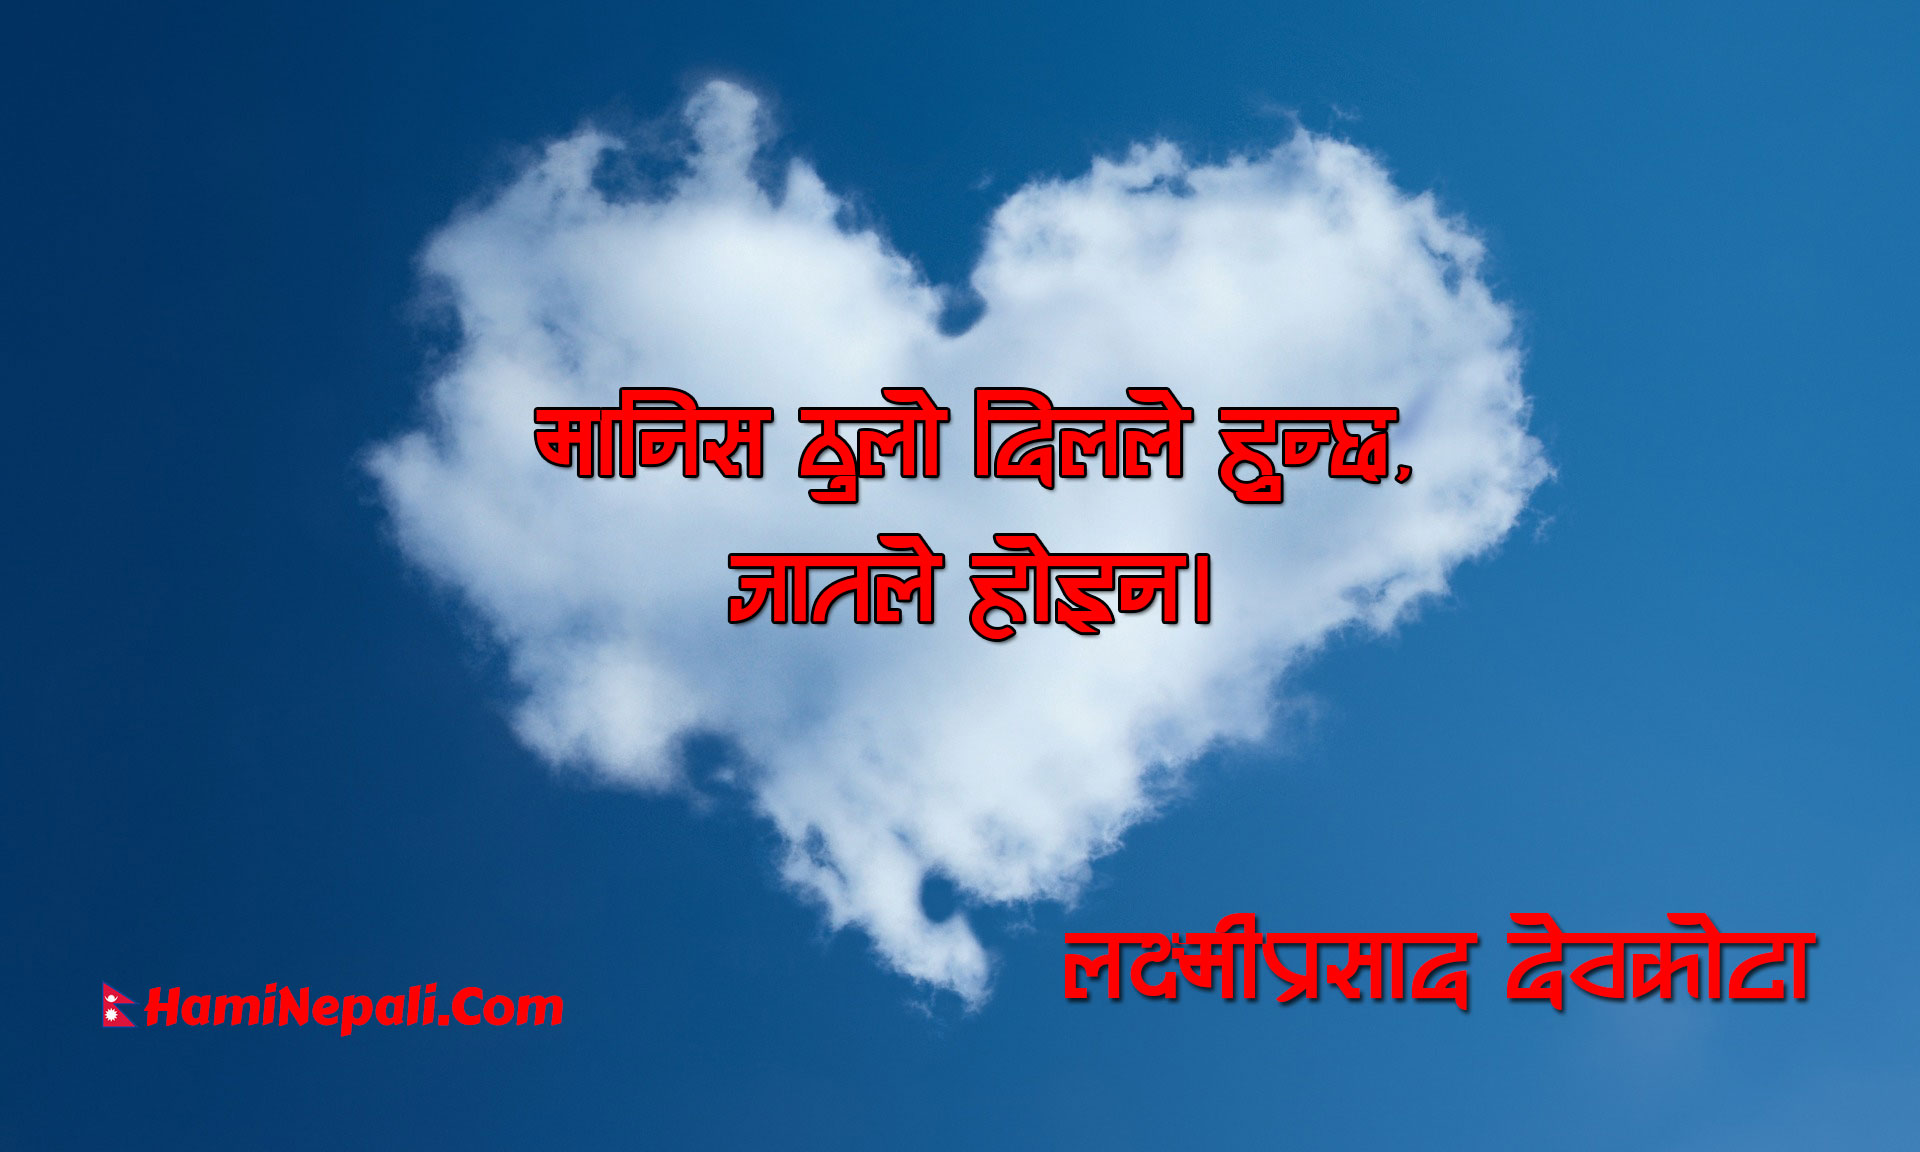 New Year Quotes In Nepali: Nepali Quotes And Proverbs